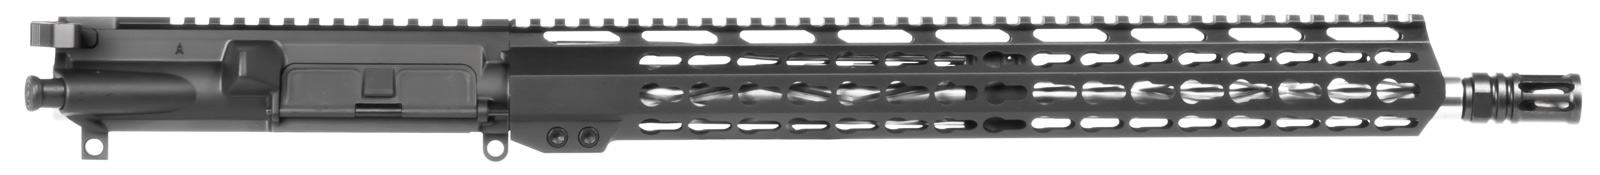 ar15-complete-upper-assembly-16-inches-diamond-fluted-keymod-rail-160003